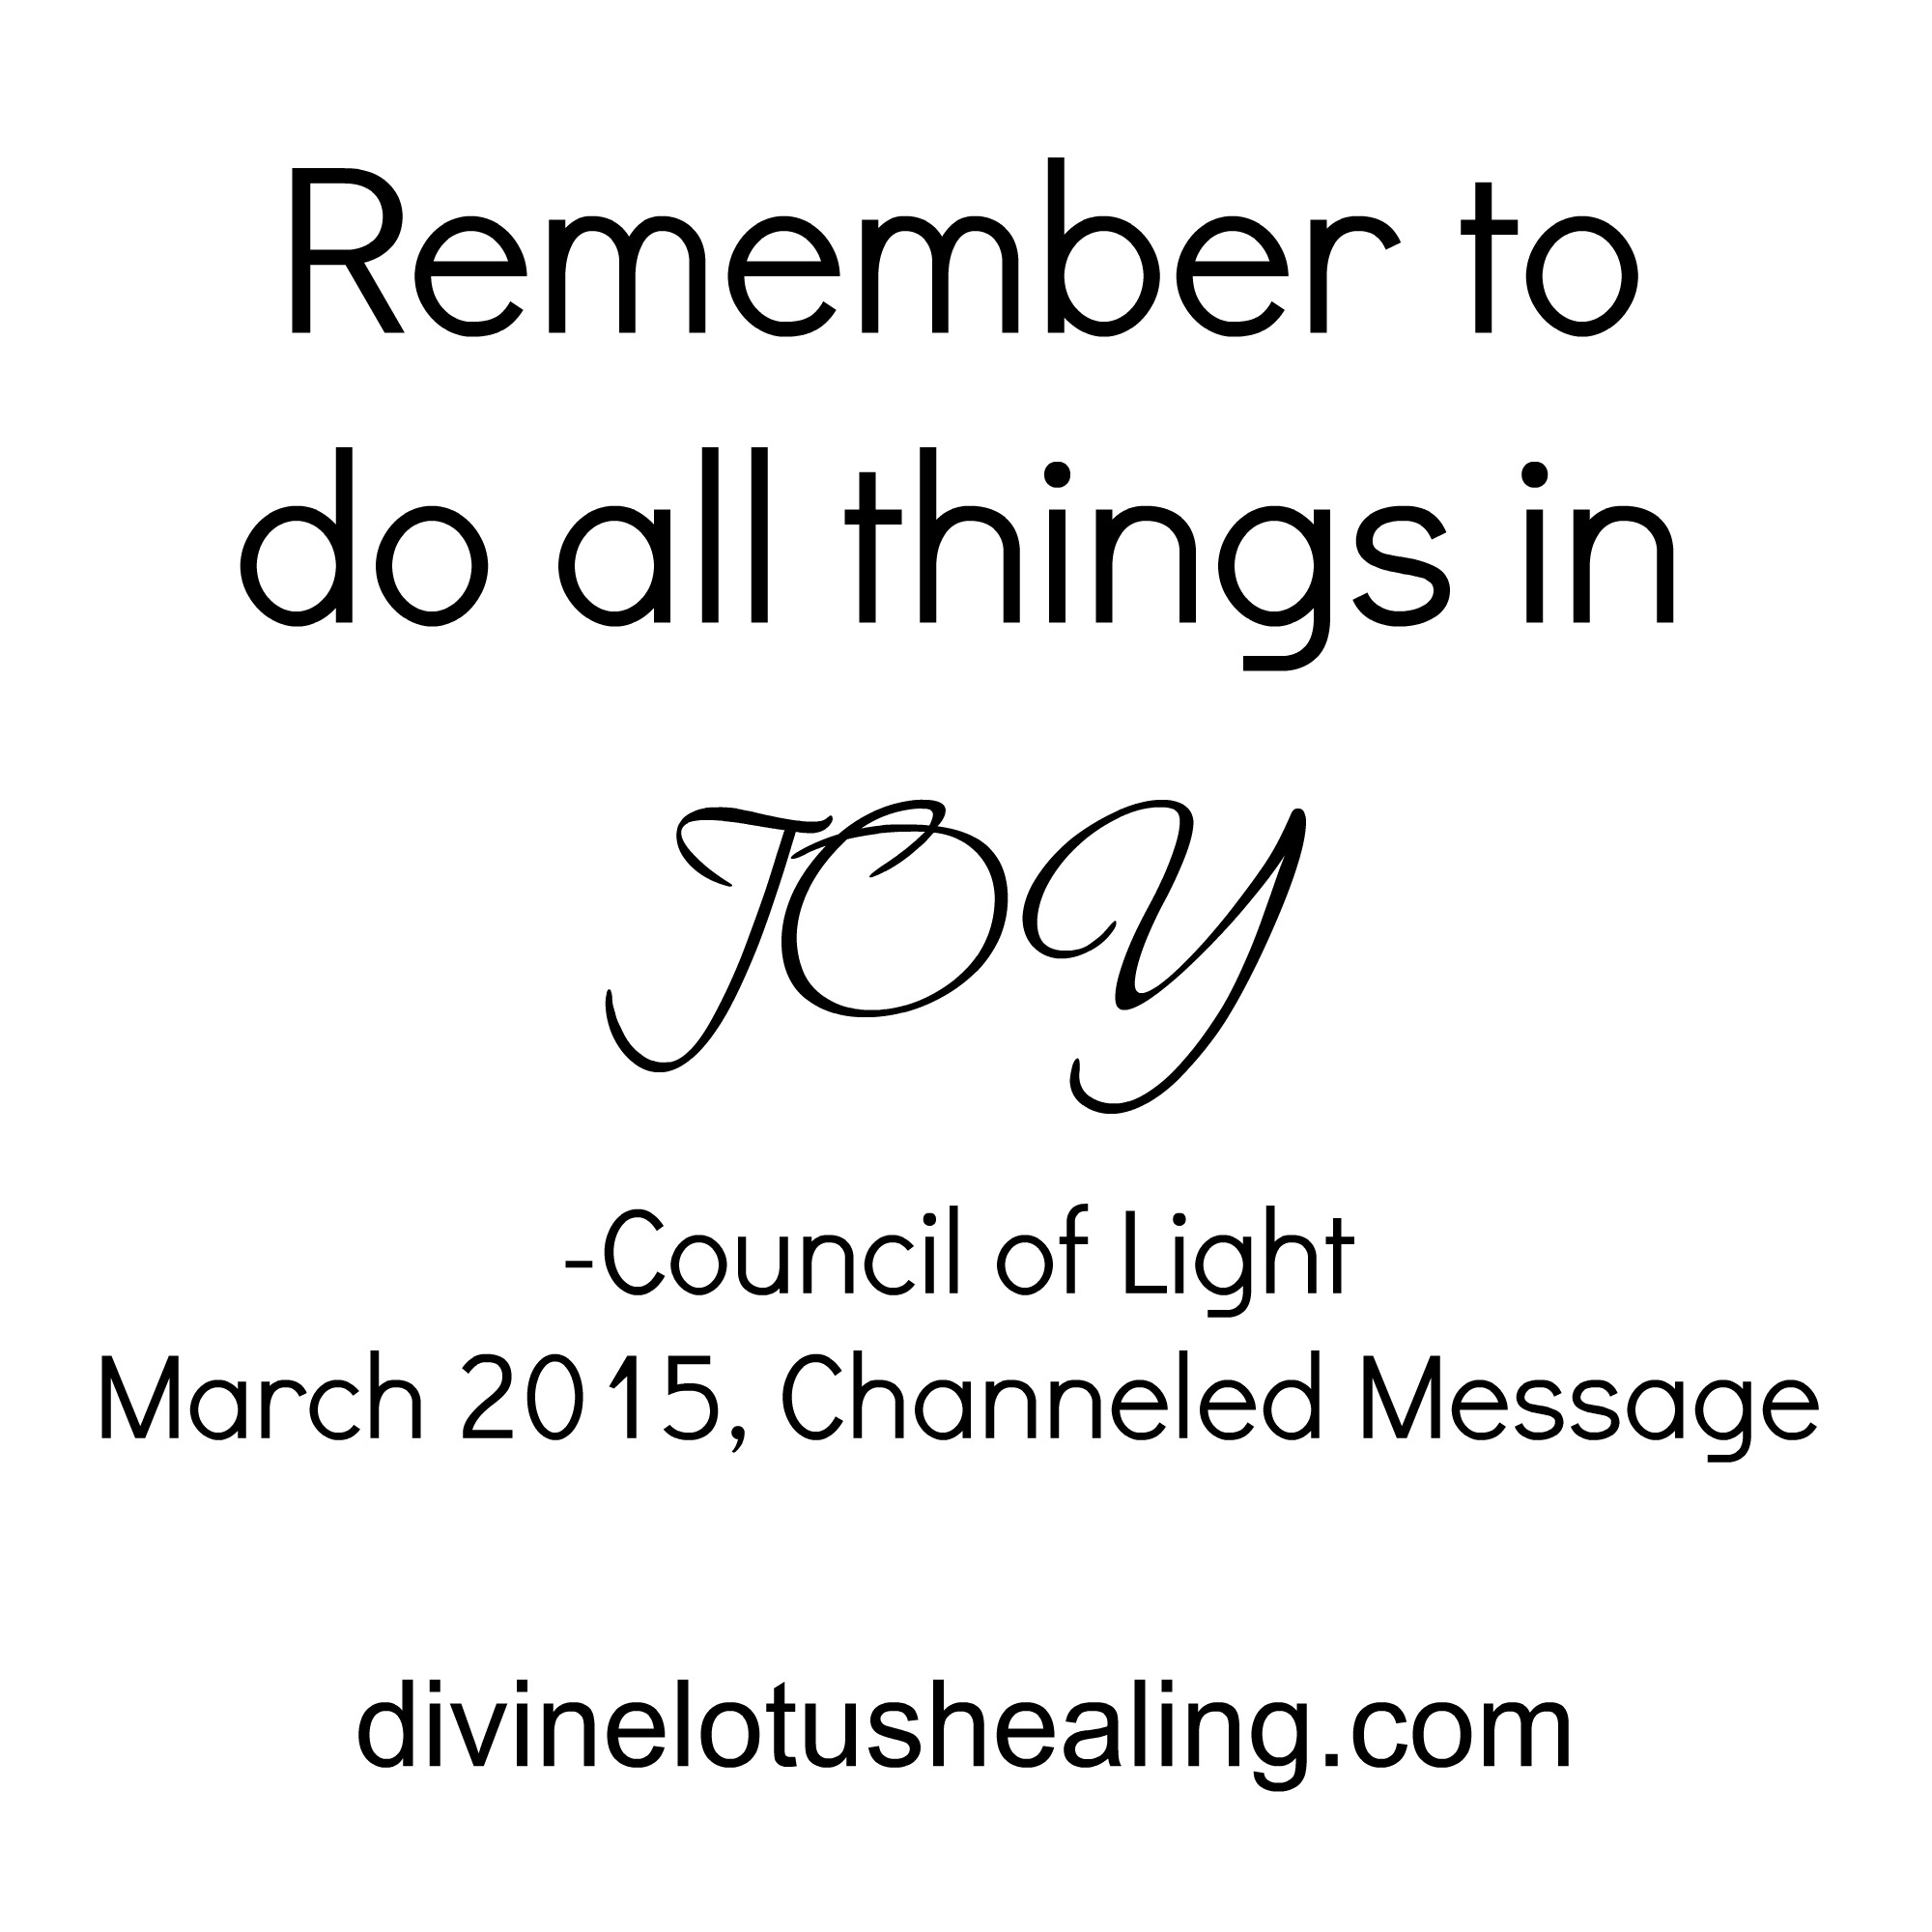 Council of Light July 2014 Channeled Message